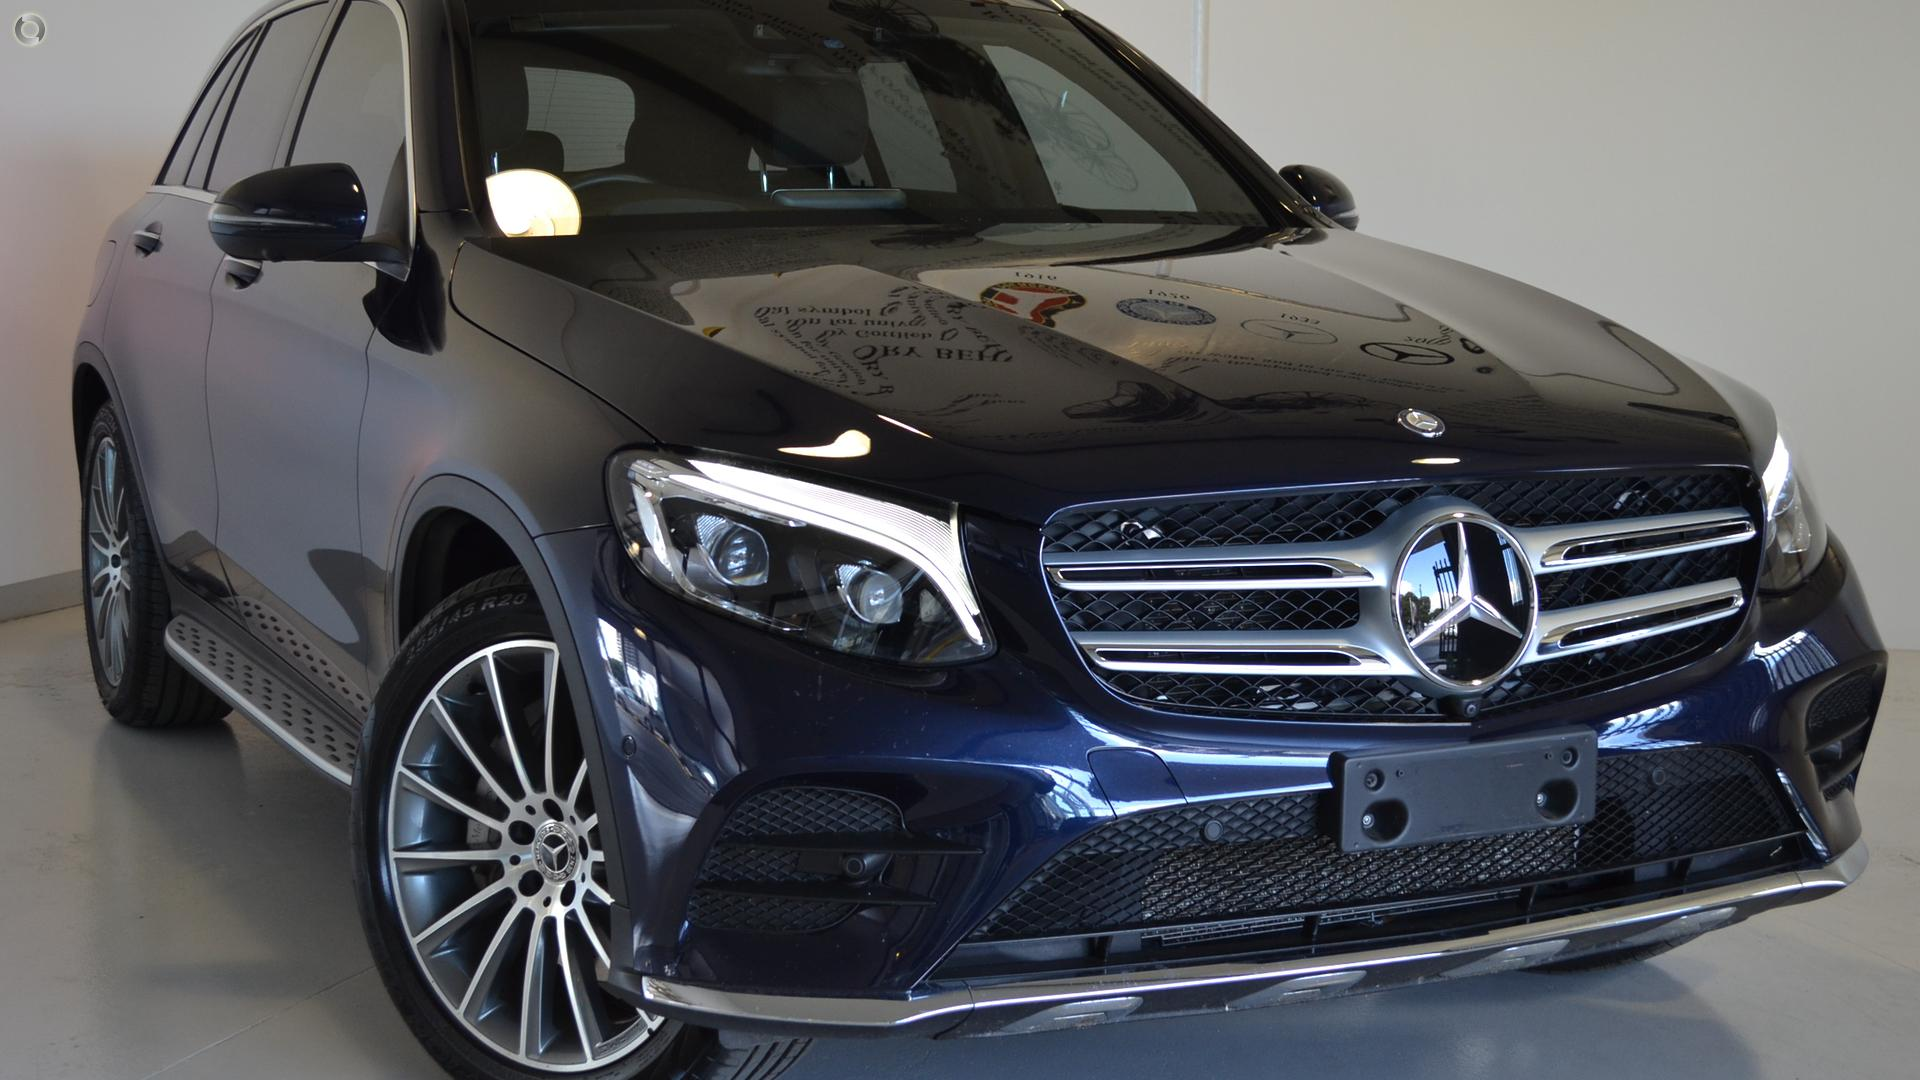 2017 Mercedes-Benz GLC 250 D Wagon